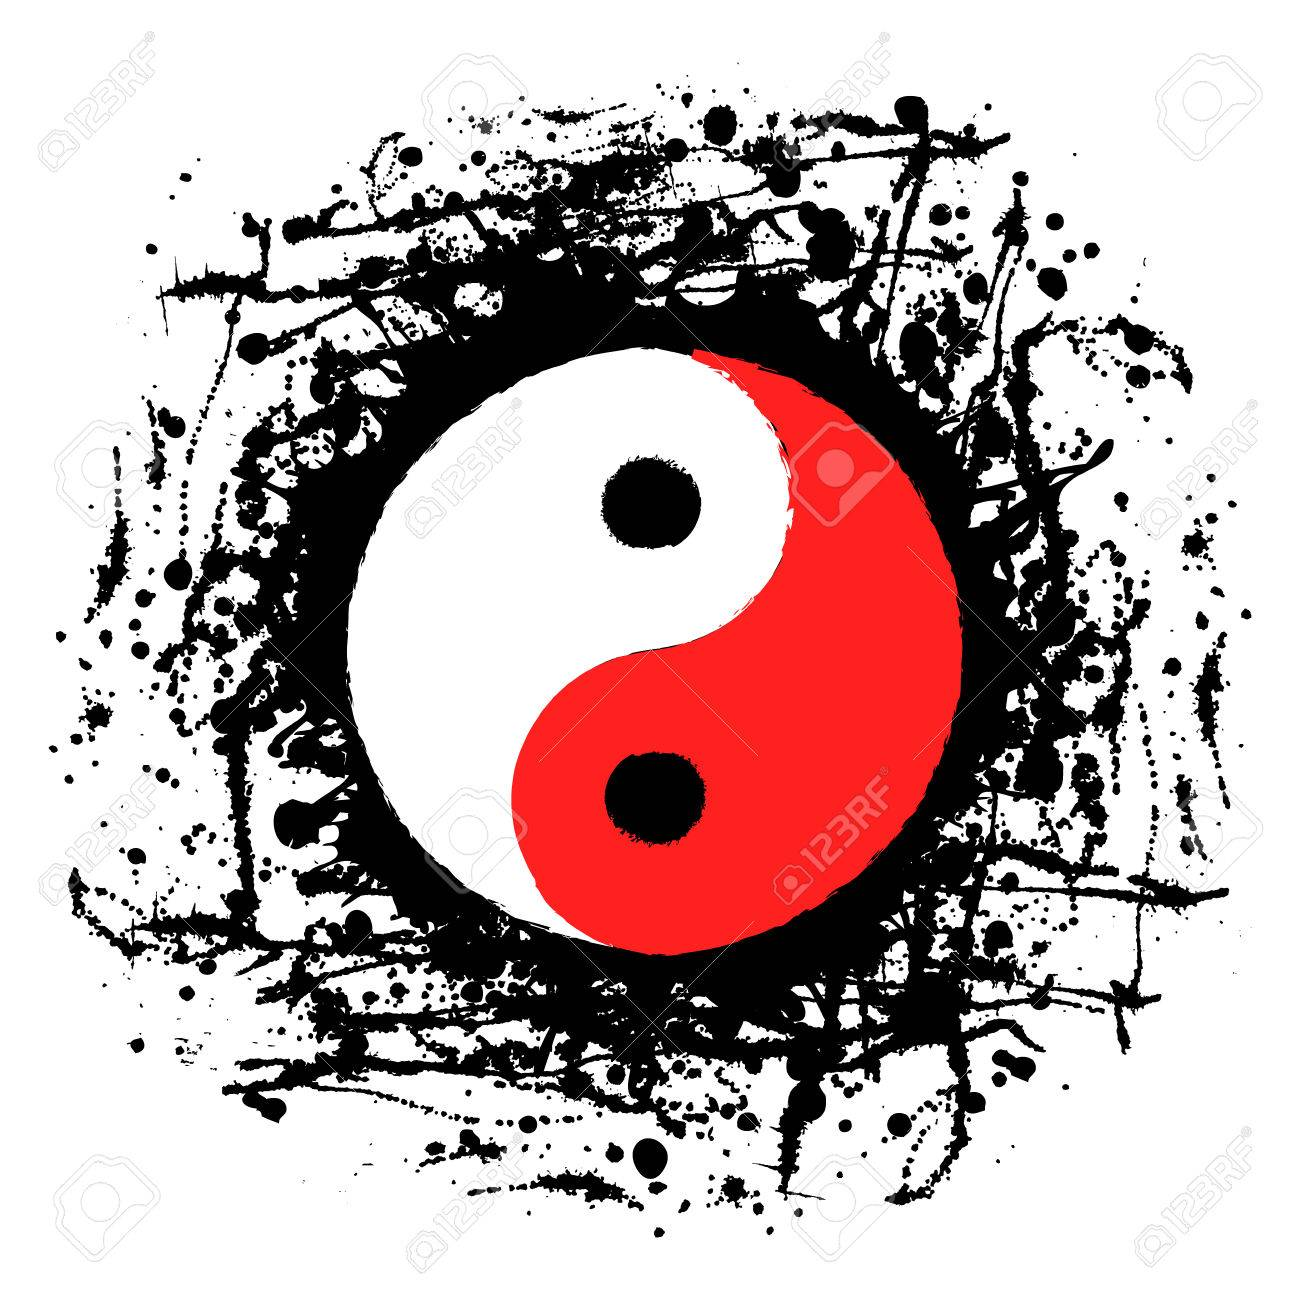 Vector vector black white red graphic illustration of sign of yin yang with ink blot brush strokes isolated on the white background